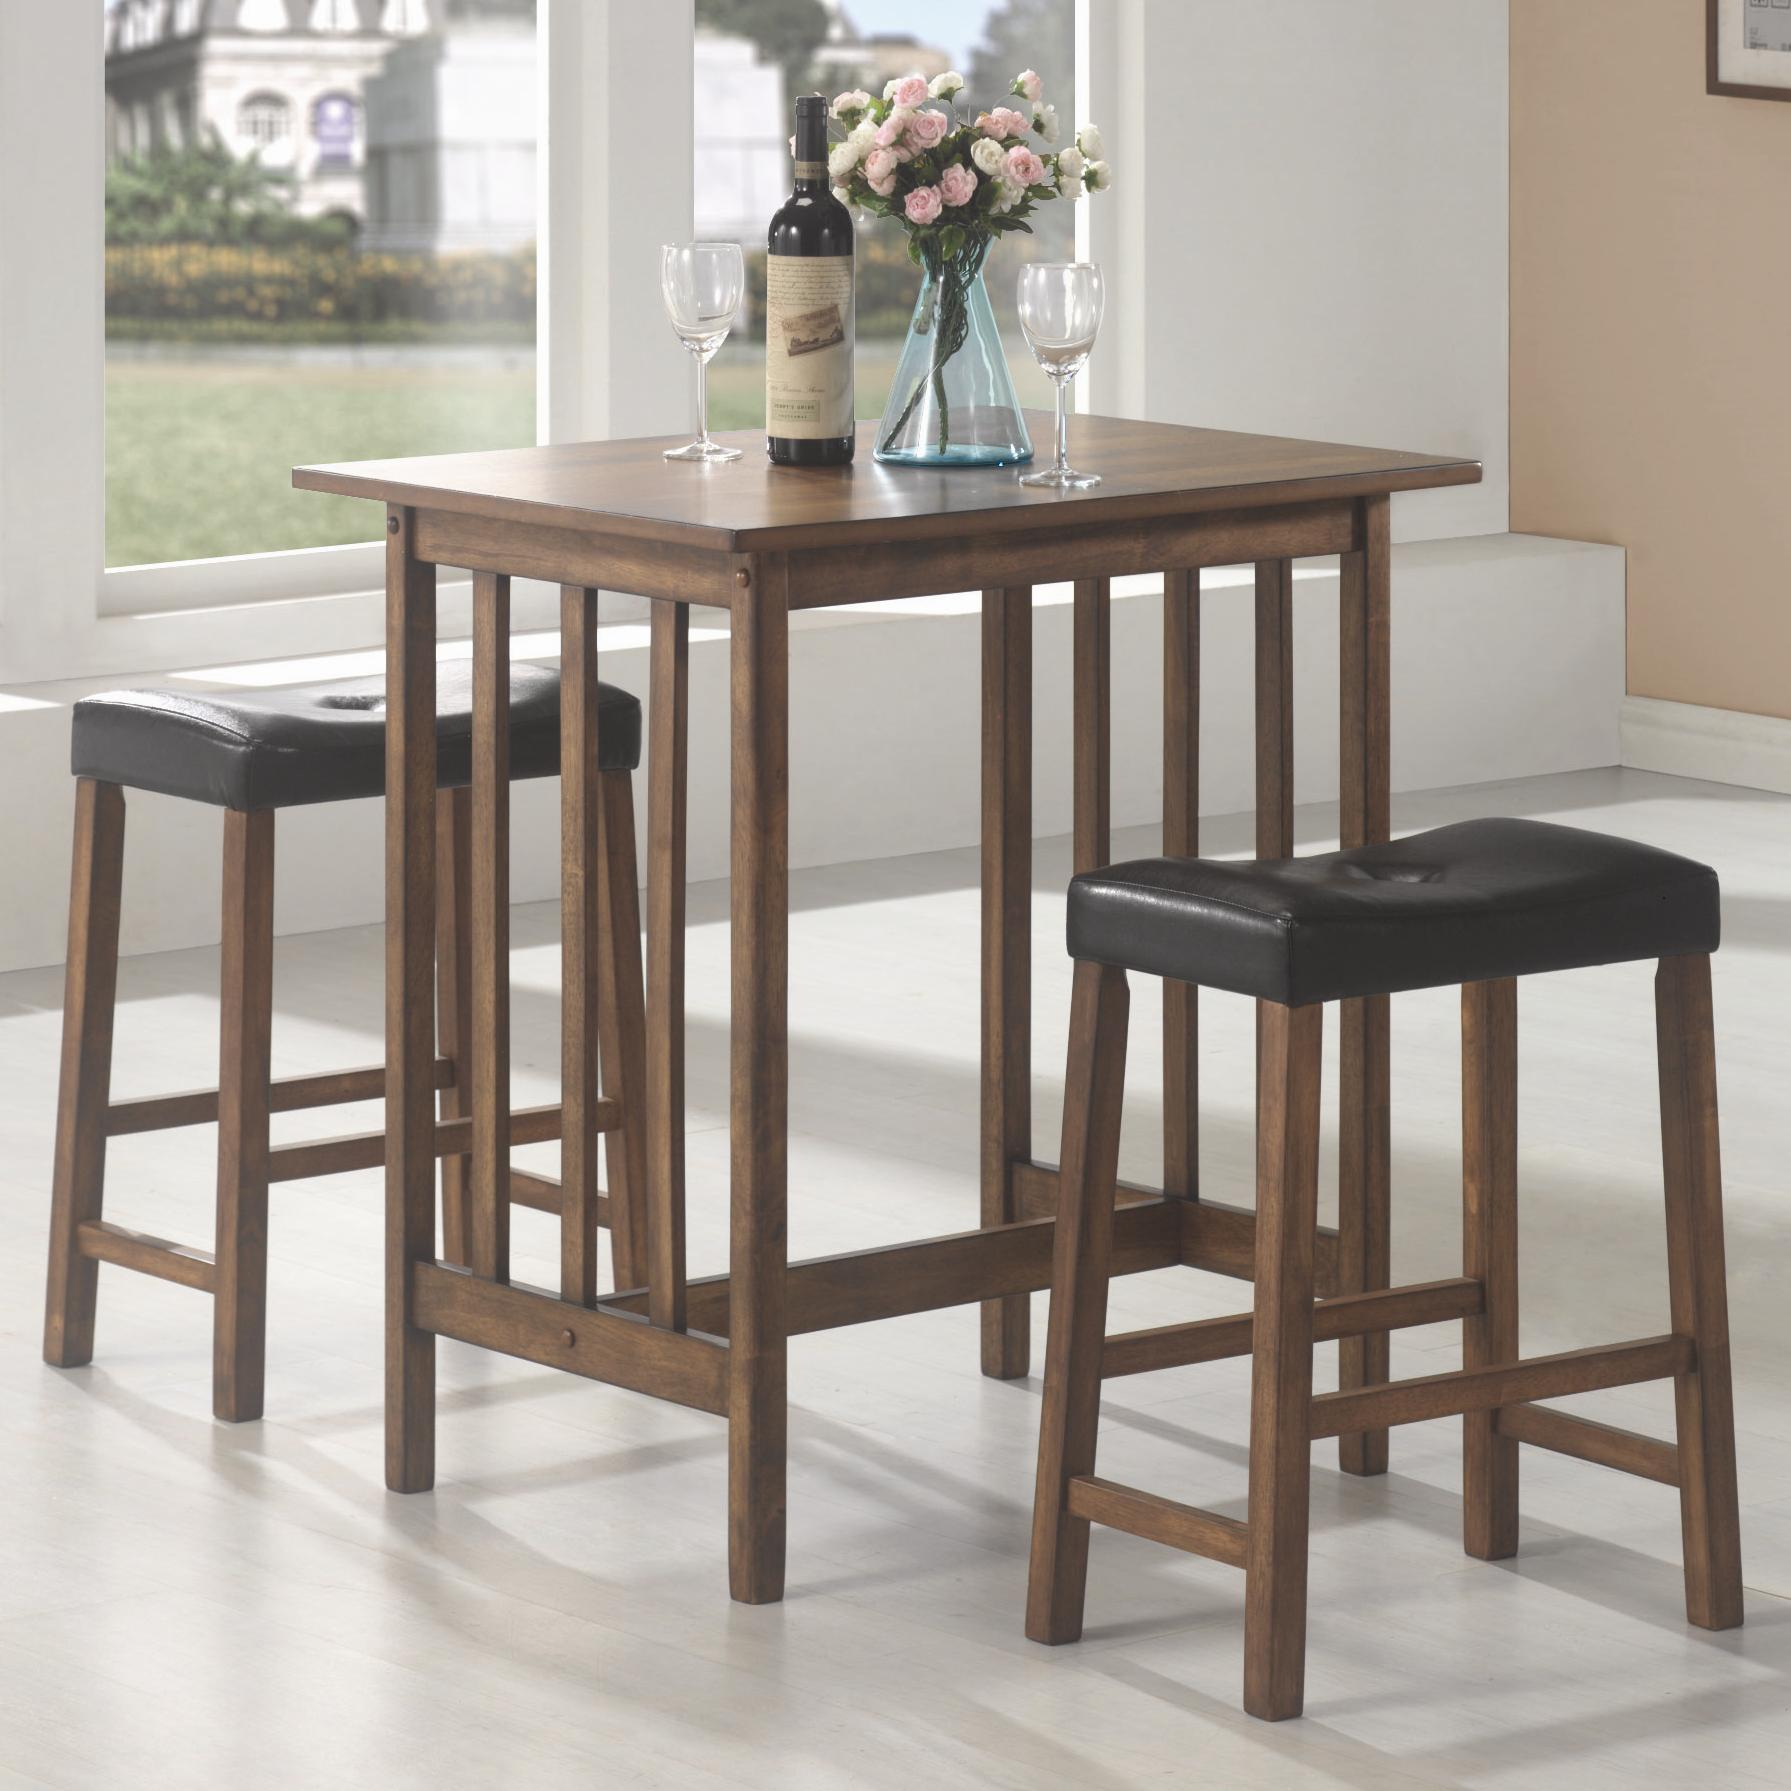 Bar Units and Bar Tables 3PC Set by Coaster at Rife's Home Furniture